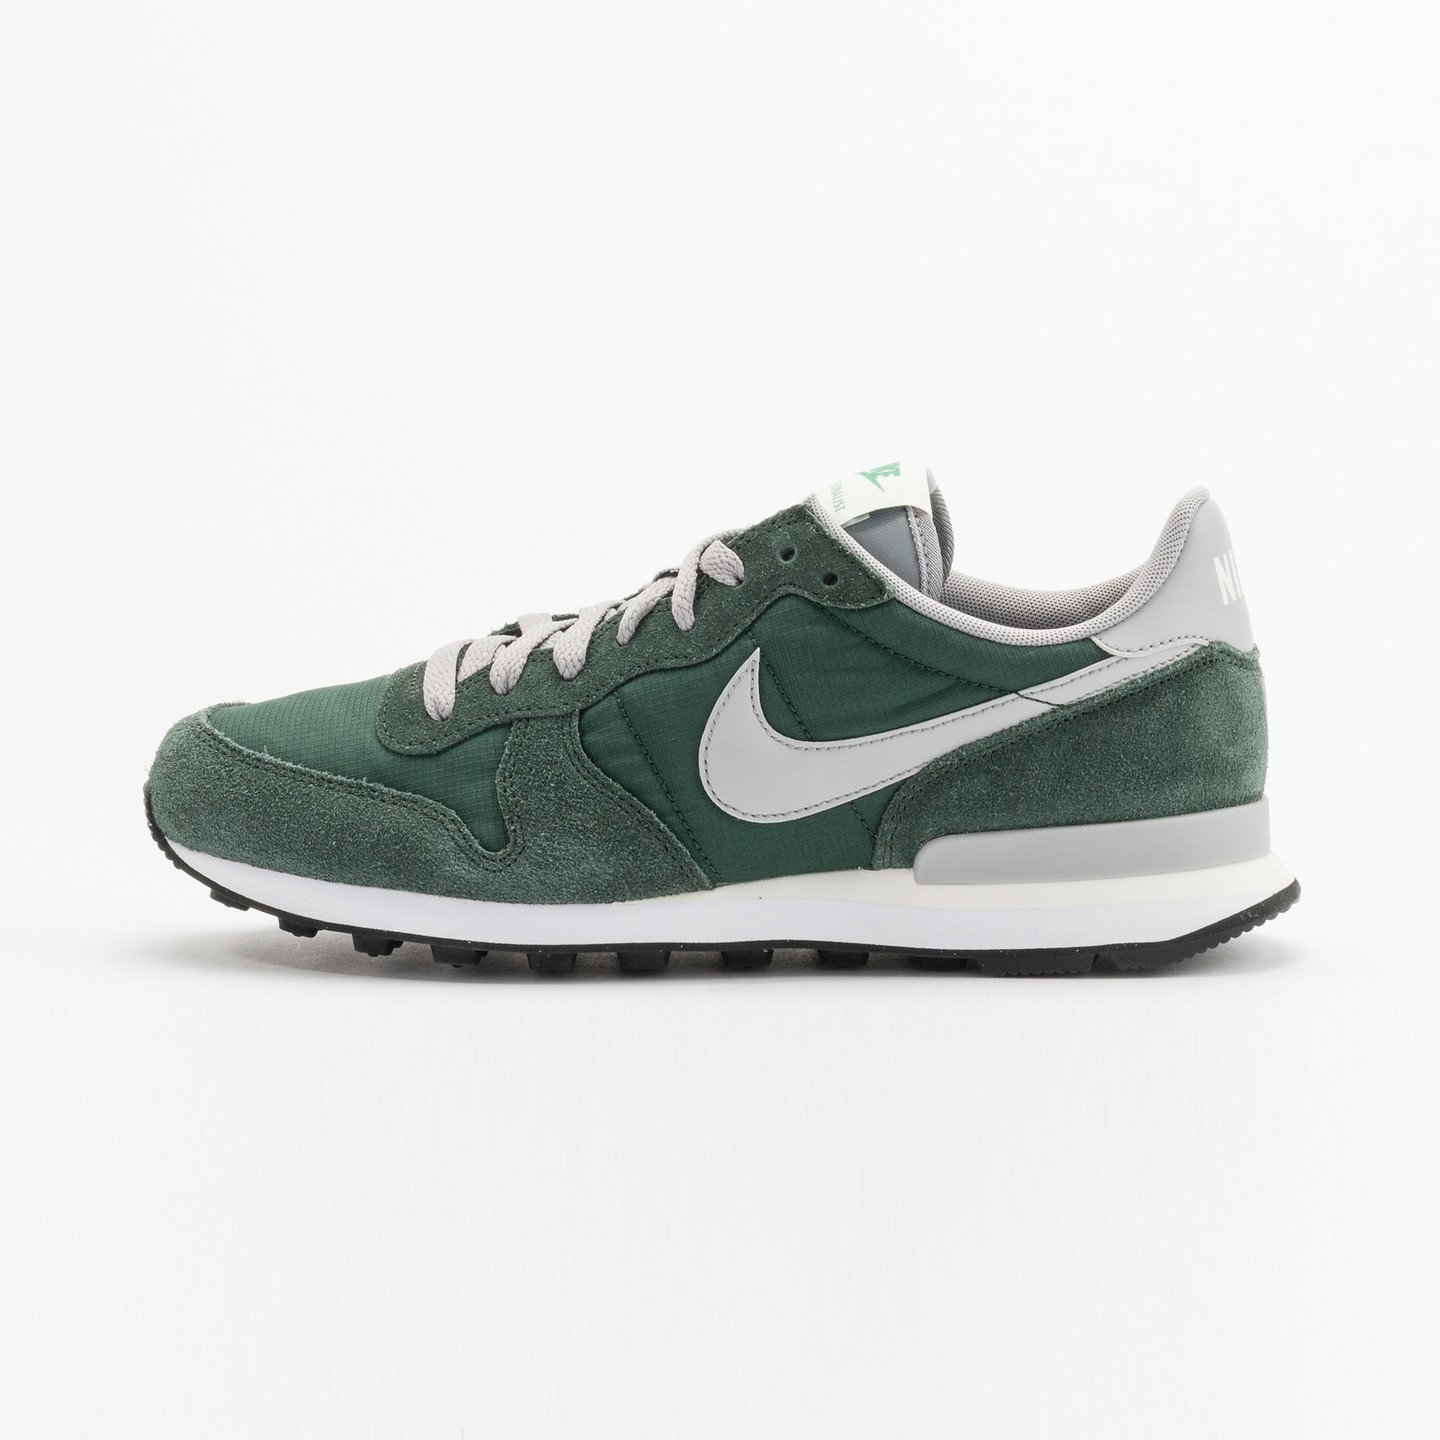 Nike Internationalist Gorge Green / Matte Silver 828041-300-42